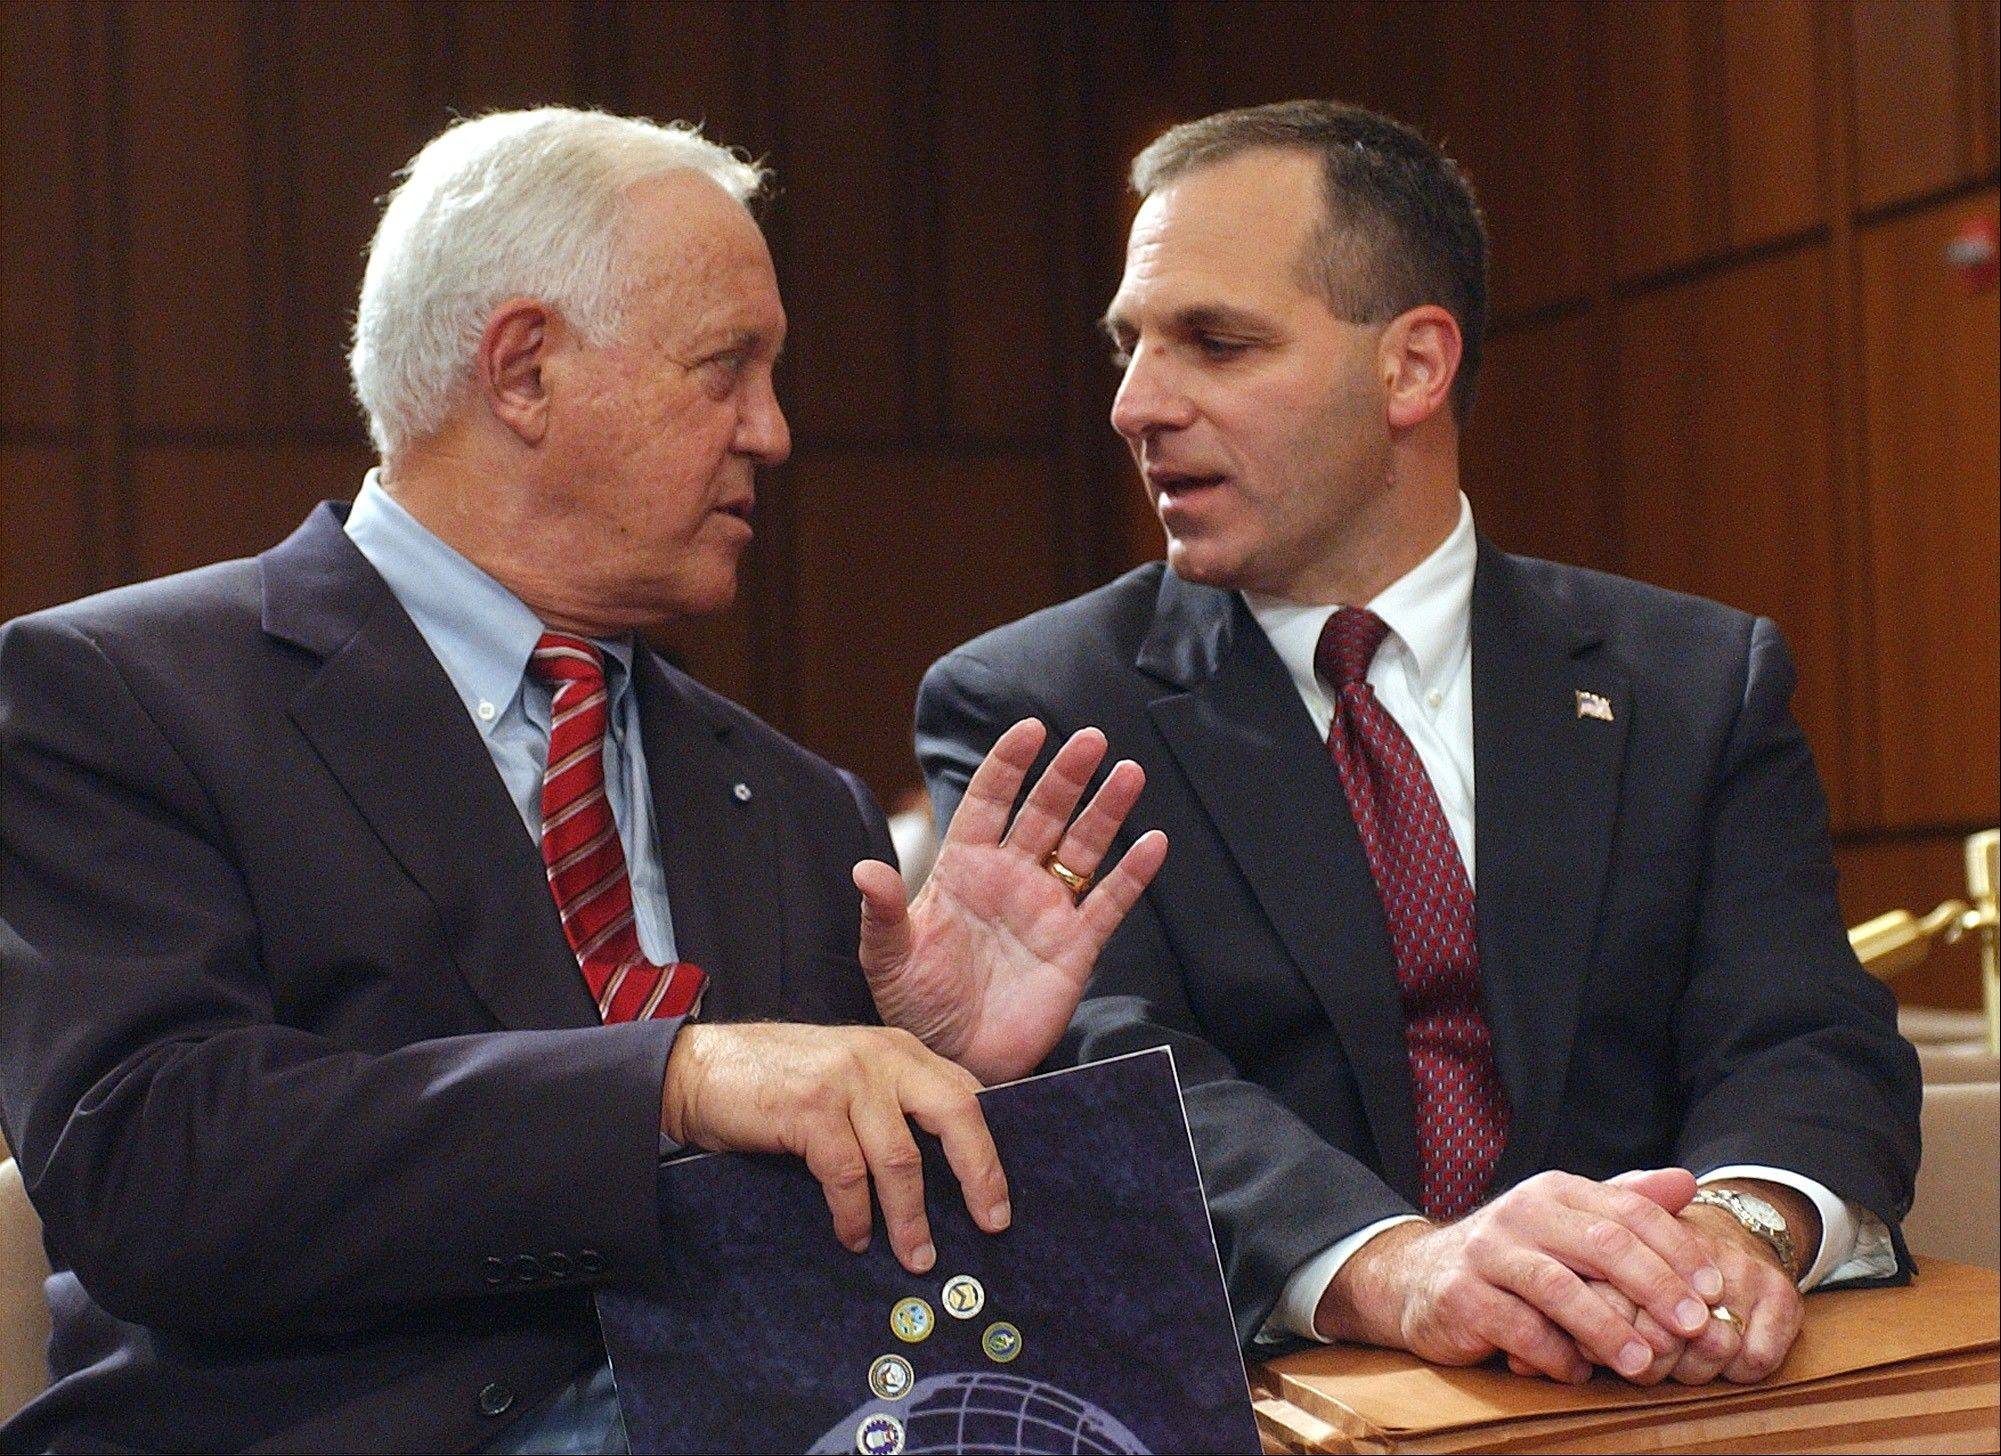 Former New Hampshire Sen. Warren Rudman, left, talks with former FBI Director Louis Freeh on Capitol Hill in Washington in this file photo from 2002. Rudman, who co-authored a ground-breaking budget balancing law, championed ethics and led a commission that predicted the danger of homeland terrorist attacks before 9/11, has died. He was 82.